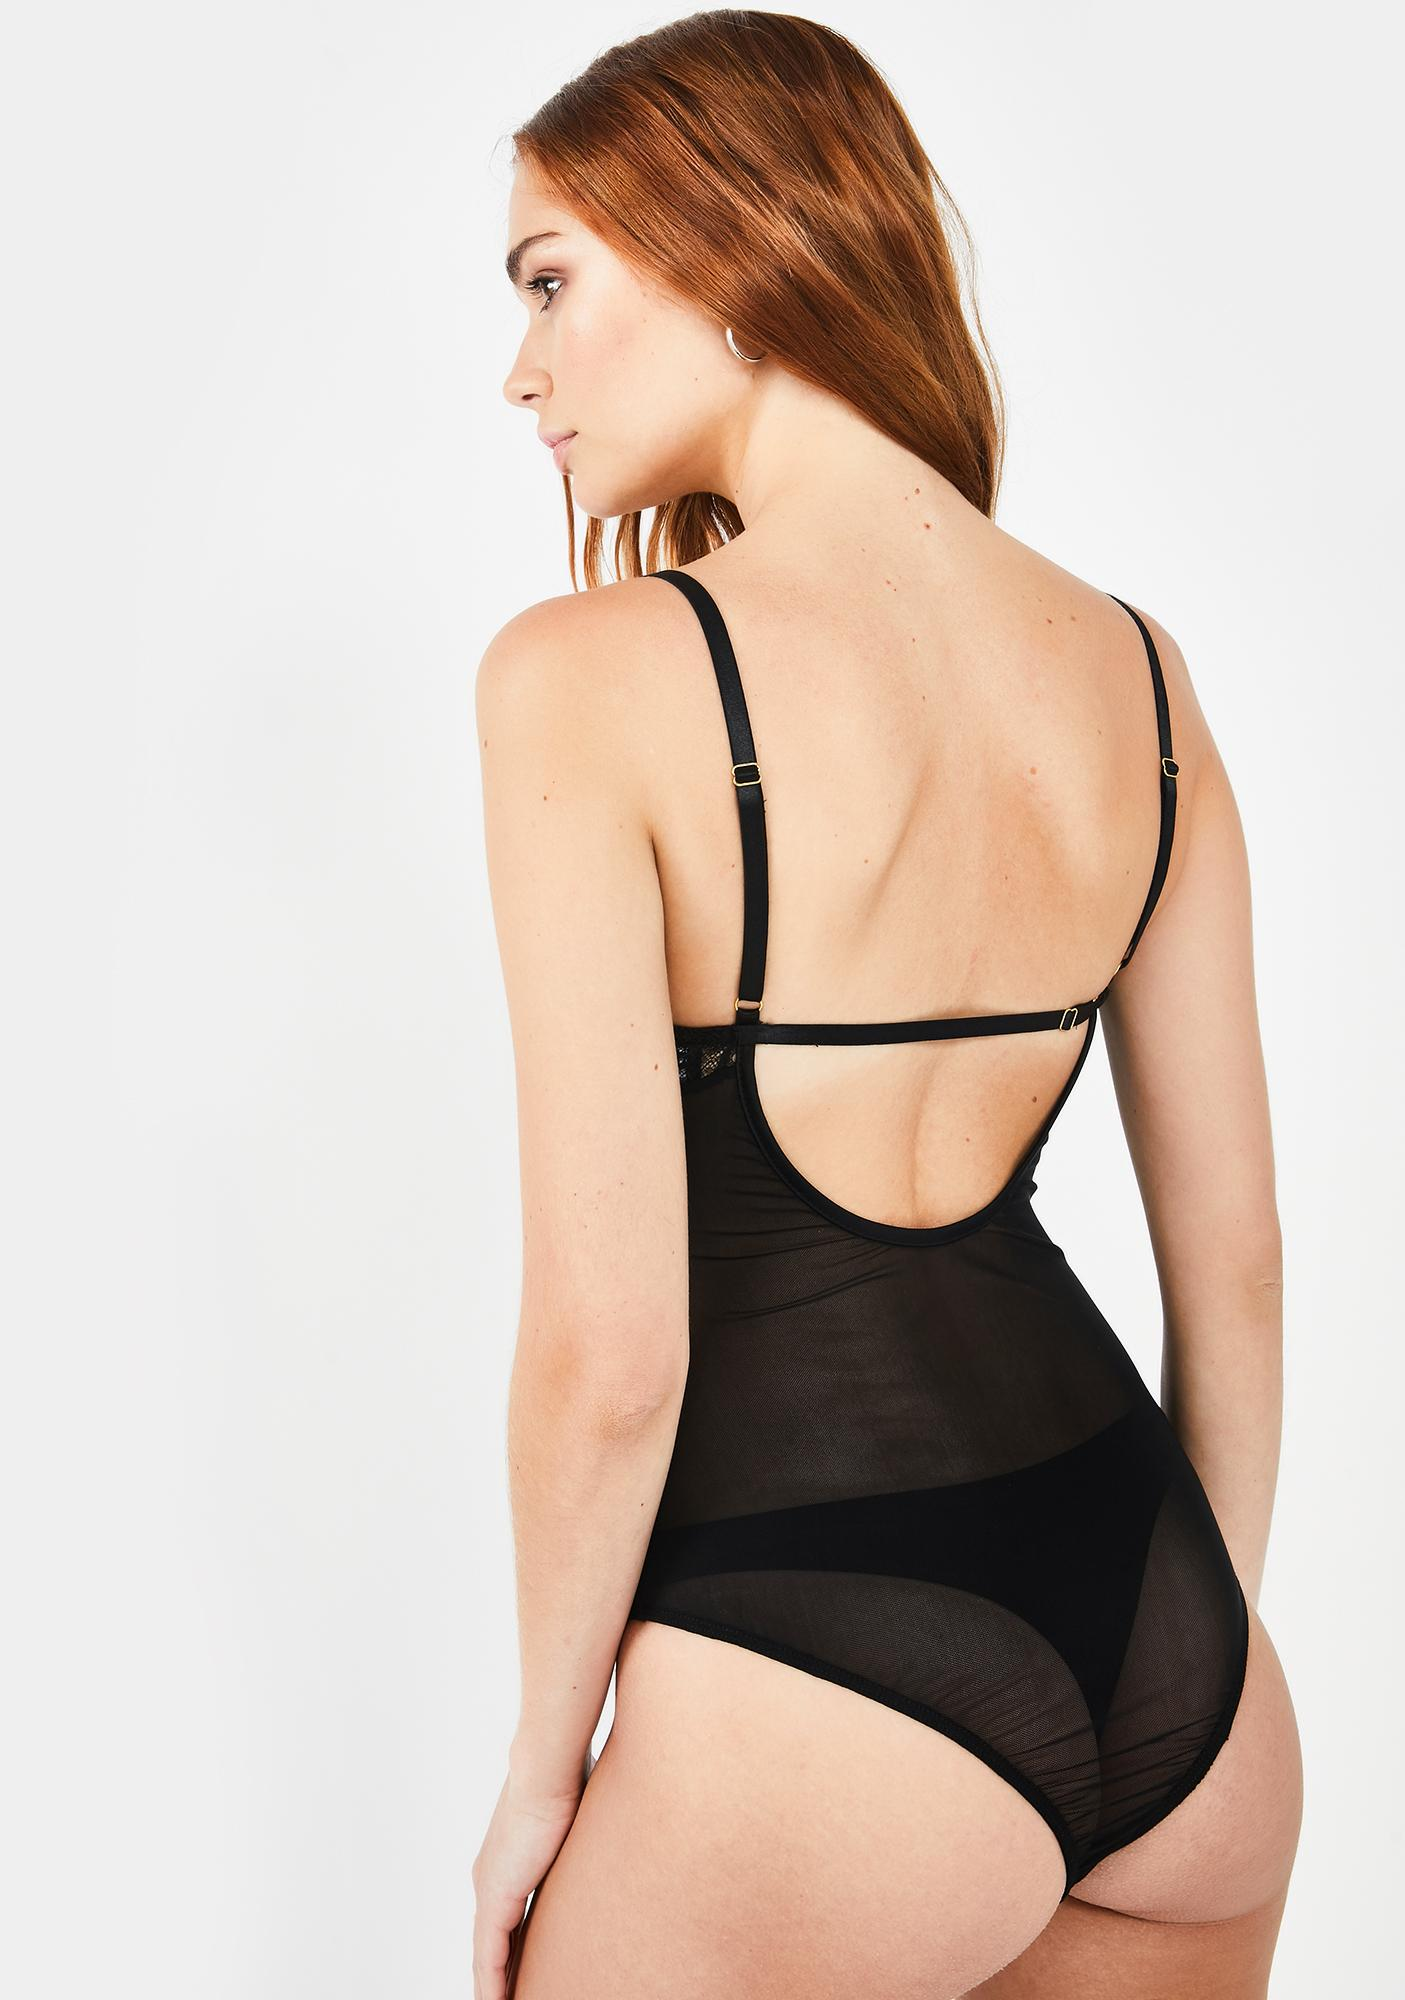 She is Us Lady Luxe Lace Bodysuit